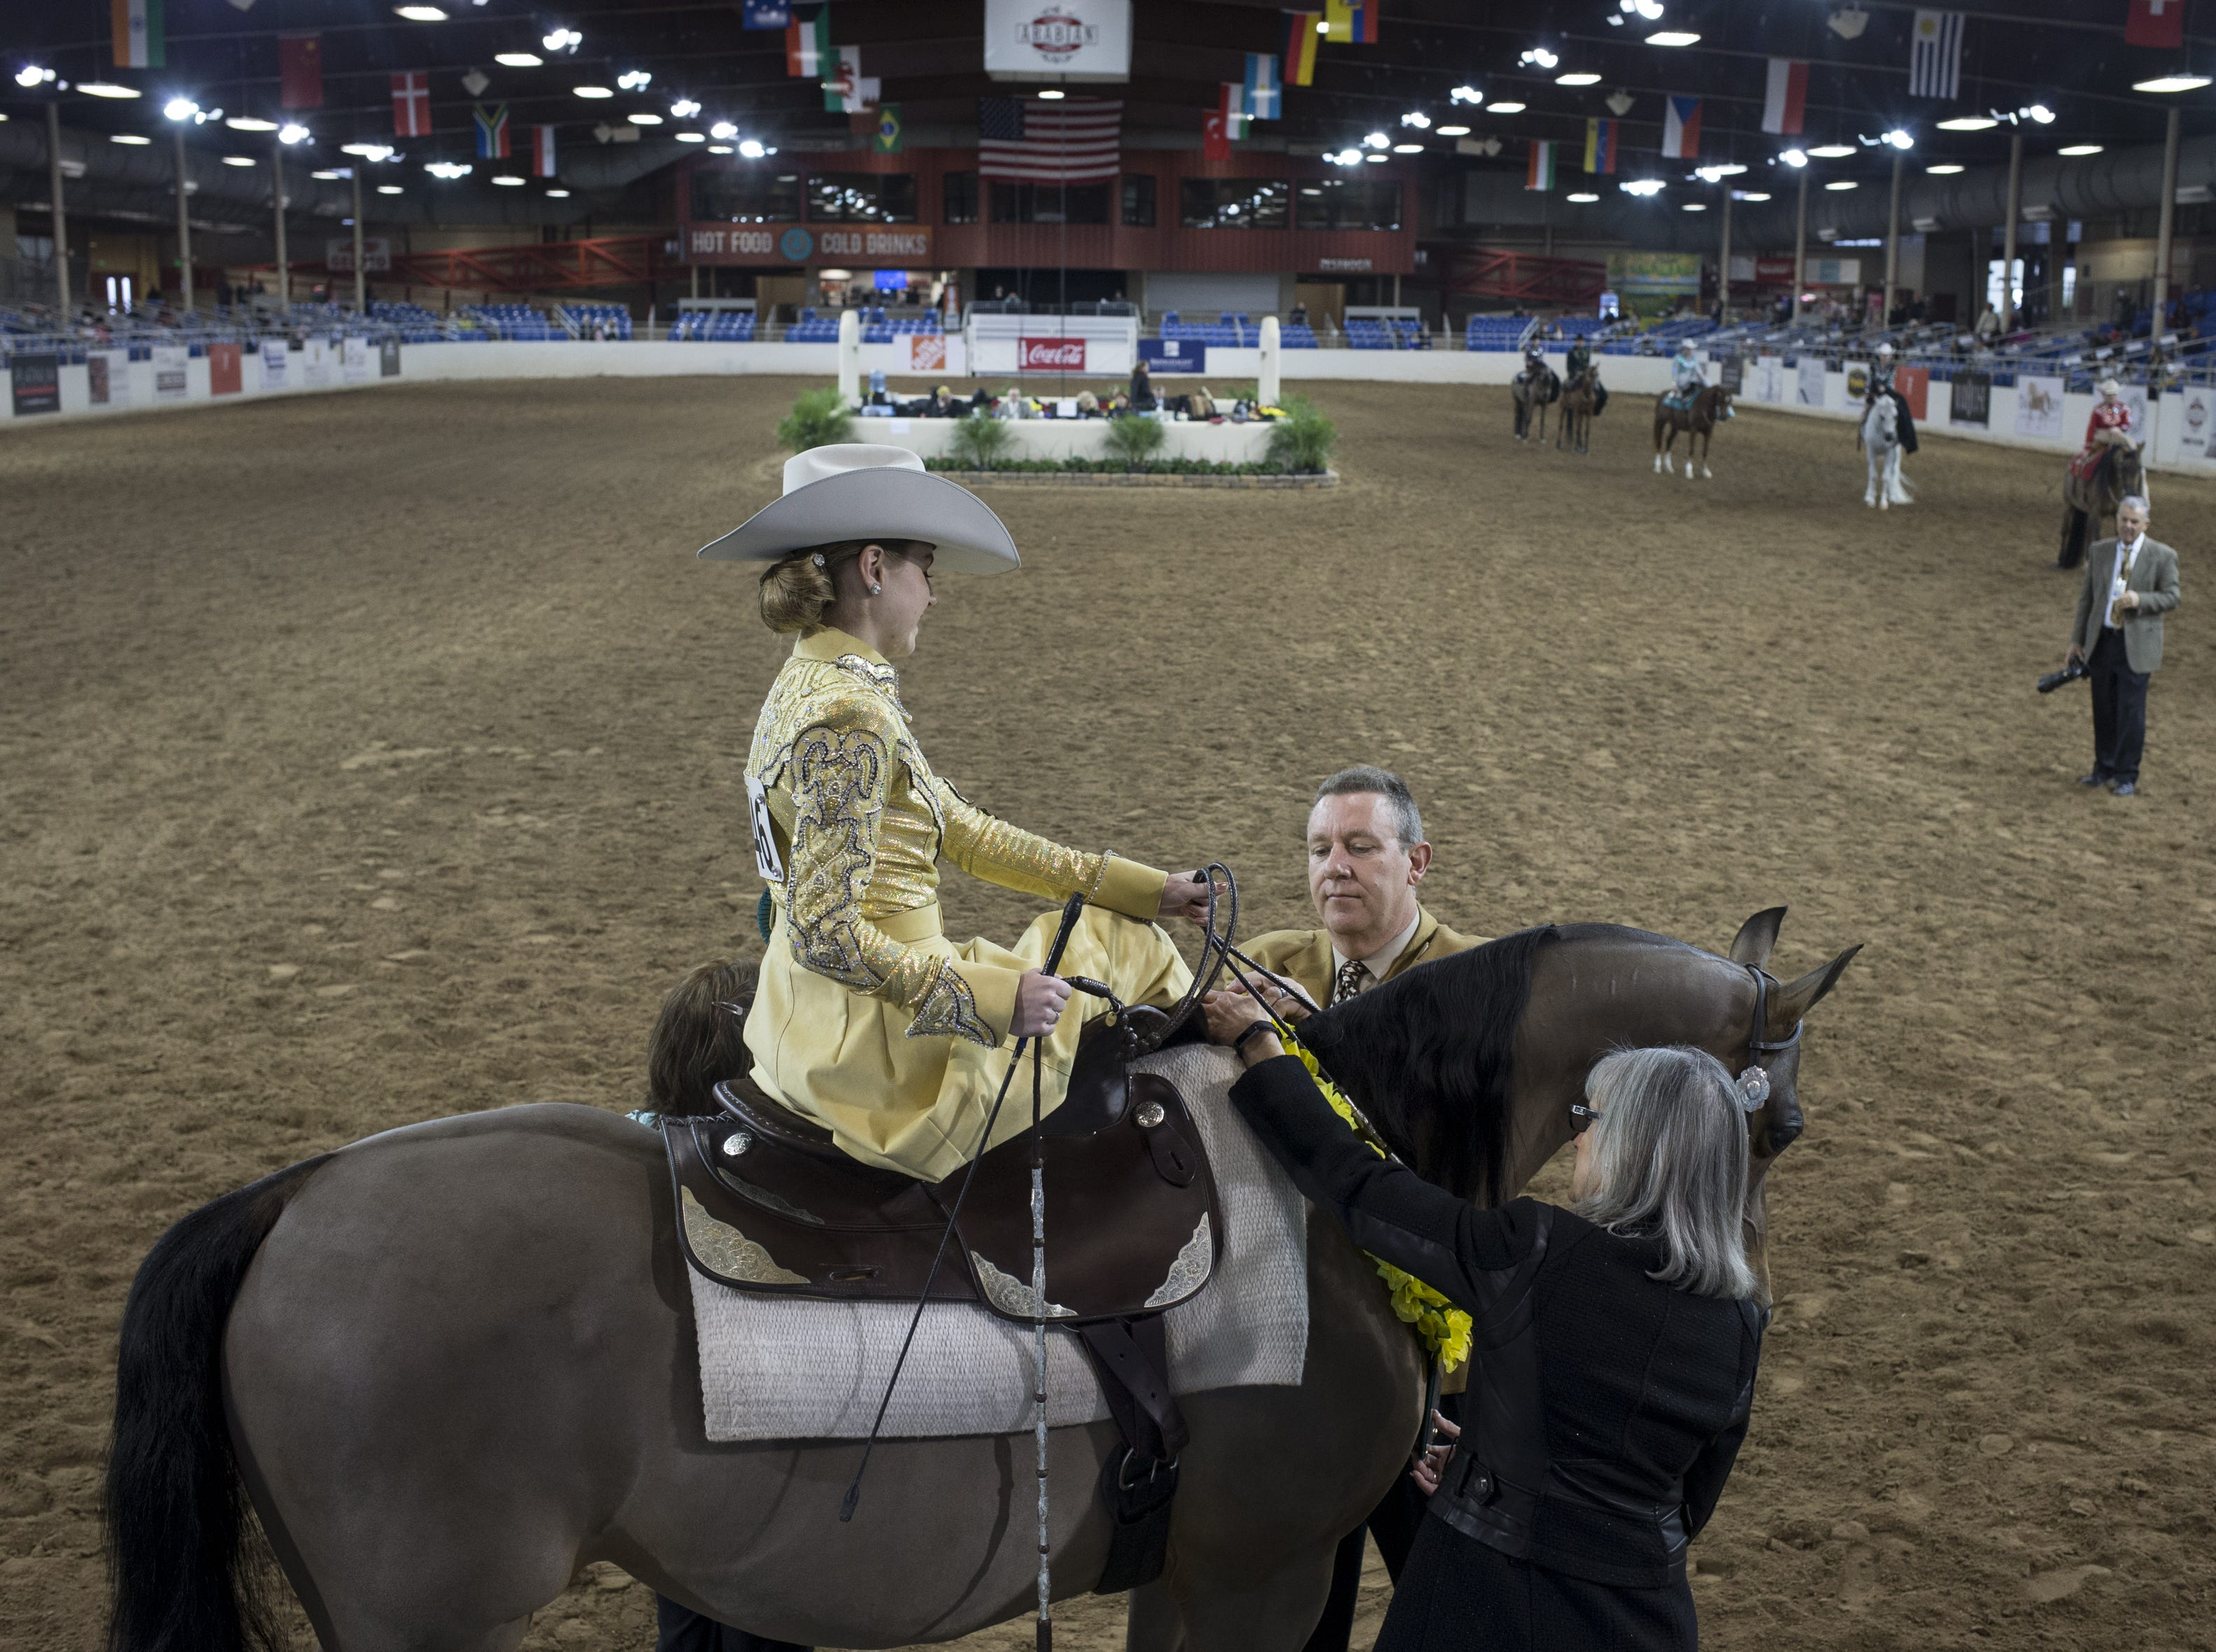 Elena Barker and her horse, Veresace place second in the Arabian Ladies Side Saddle Championship Western 18 & under category on Feb. 18, 2019, during the 64th Annual Scottsdale Arabian Horse Show at West World.